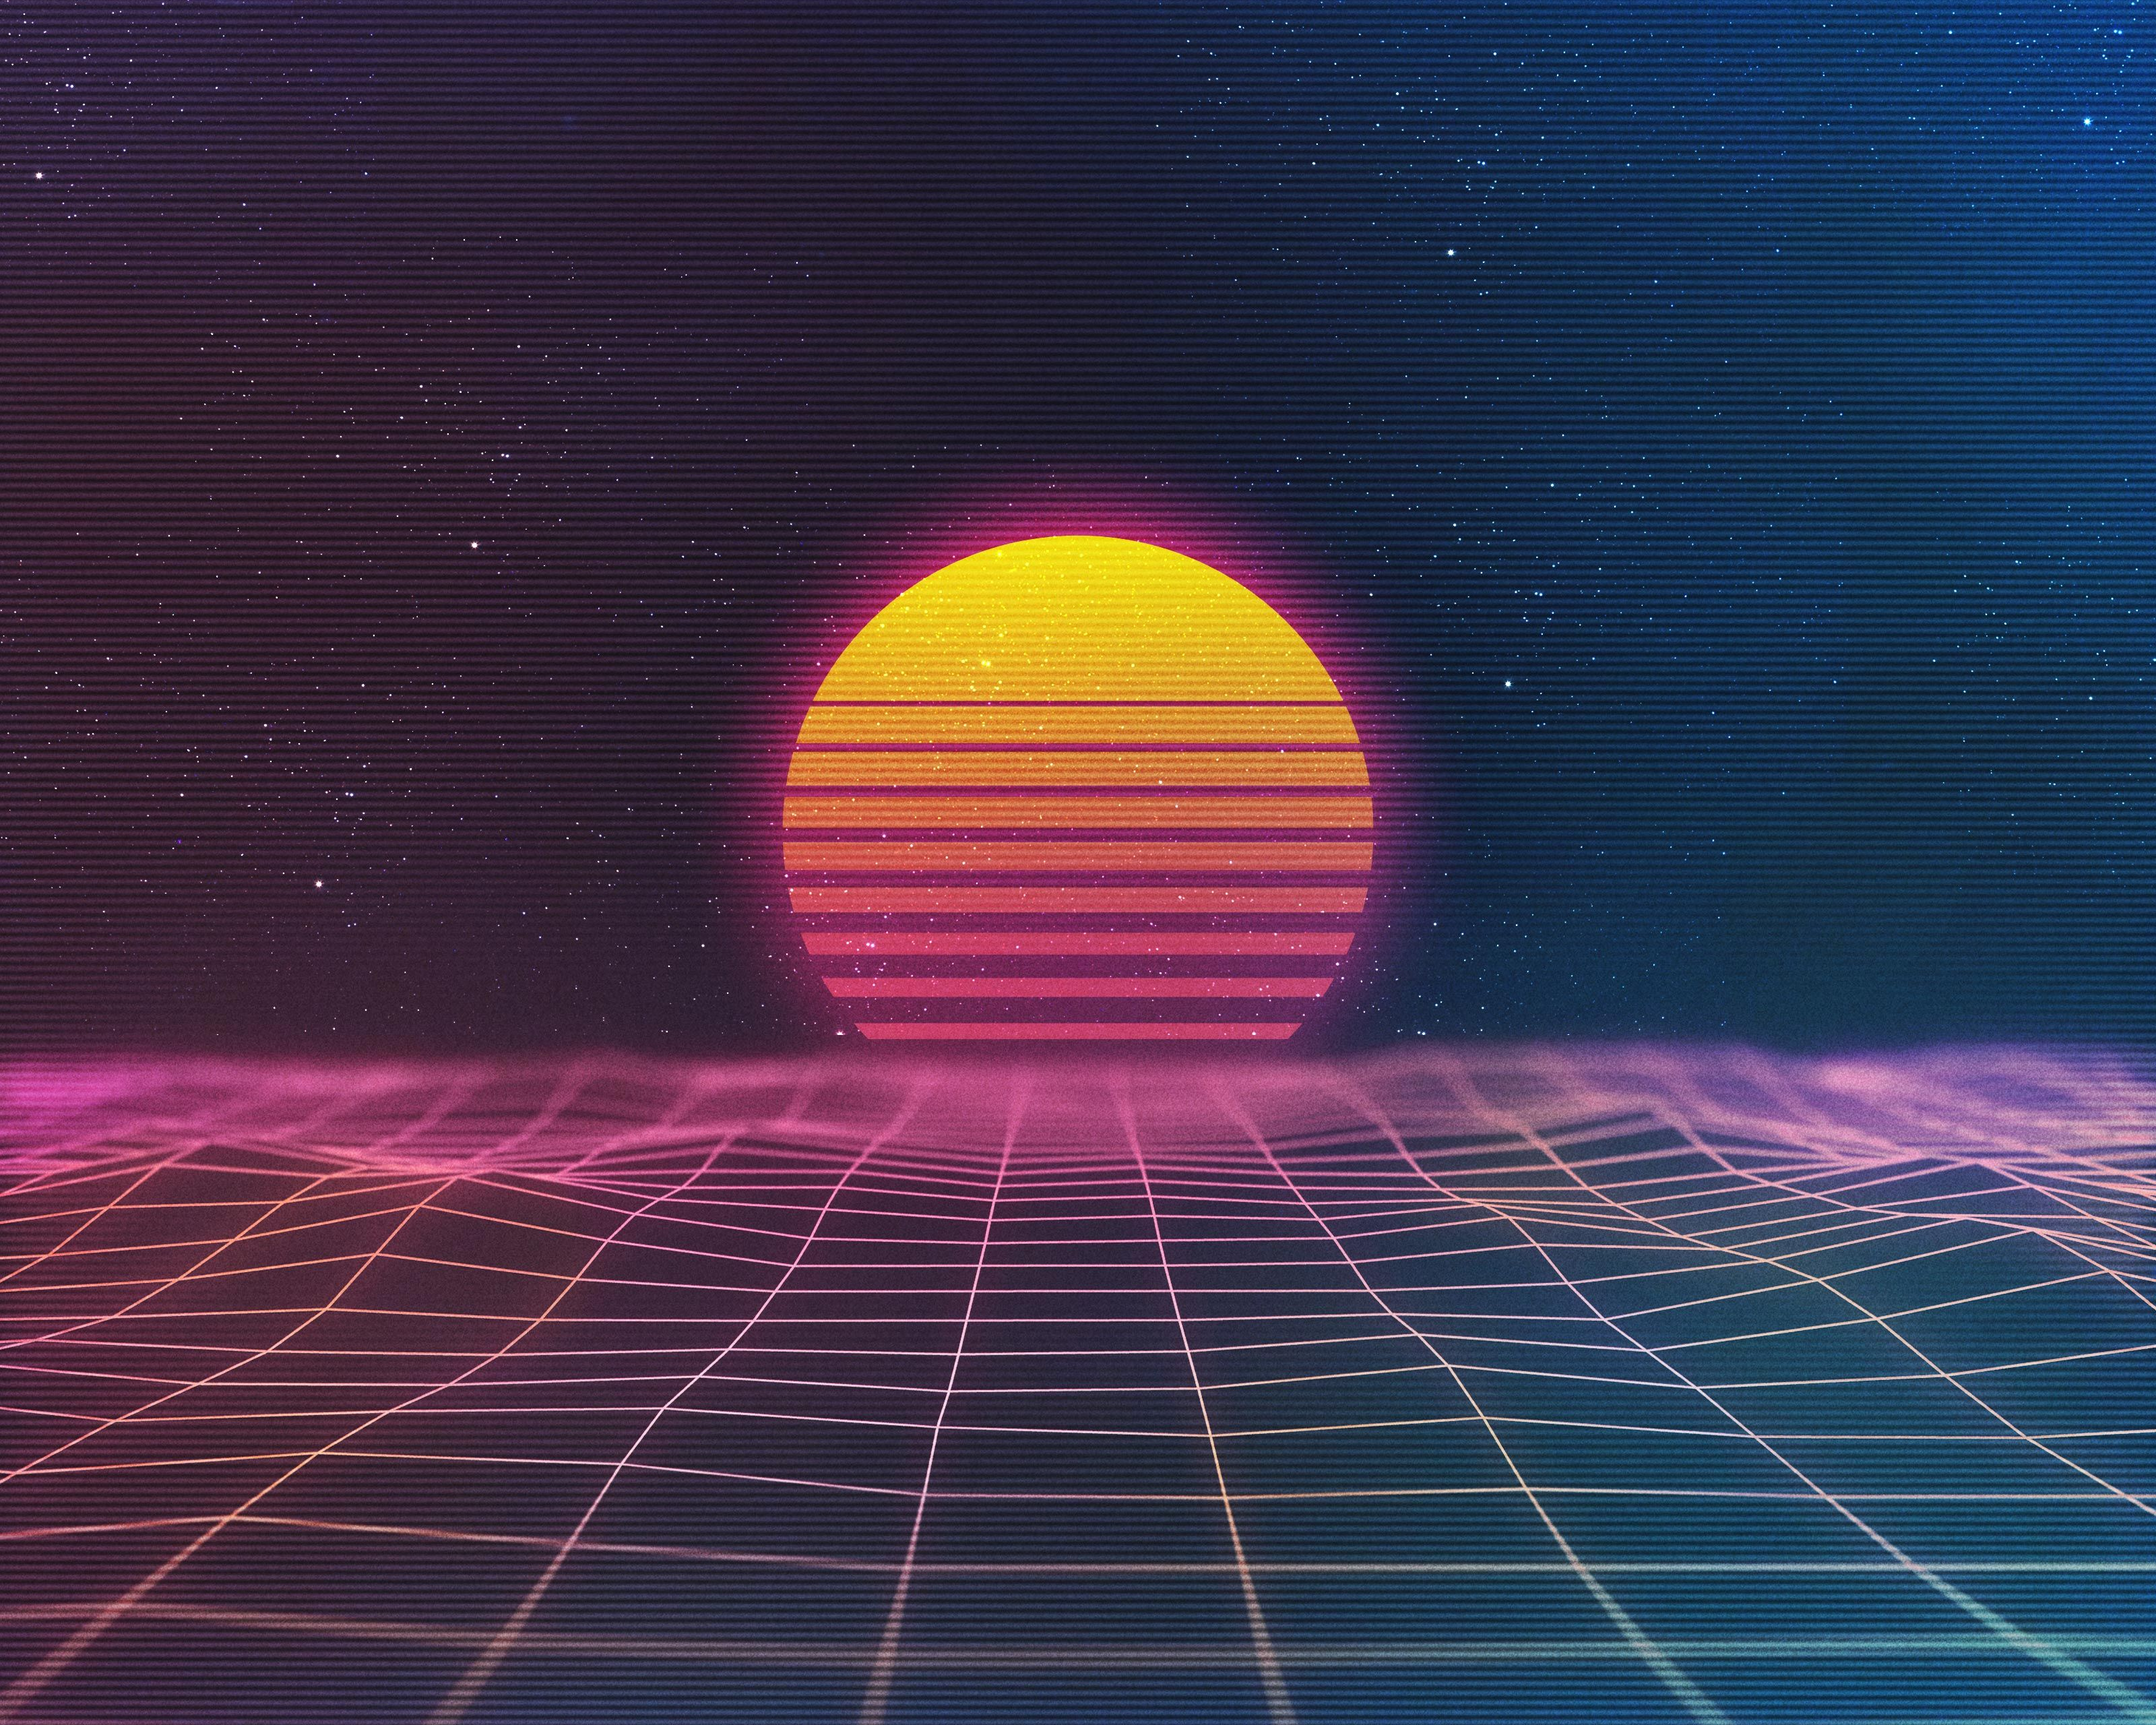 Rad Pack 80 S Themed Hd Wallpapers Nate Wren Graphic Design